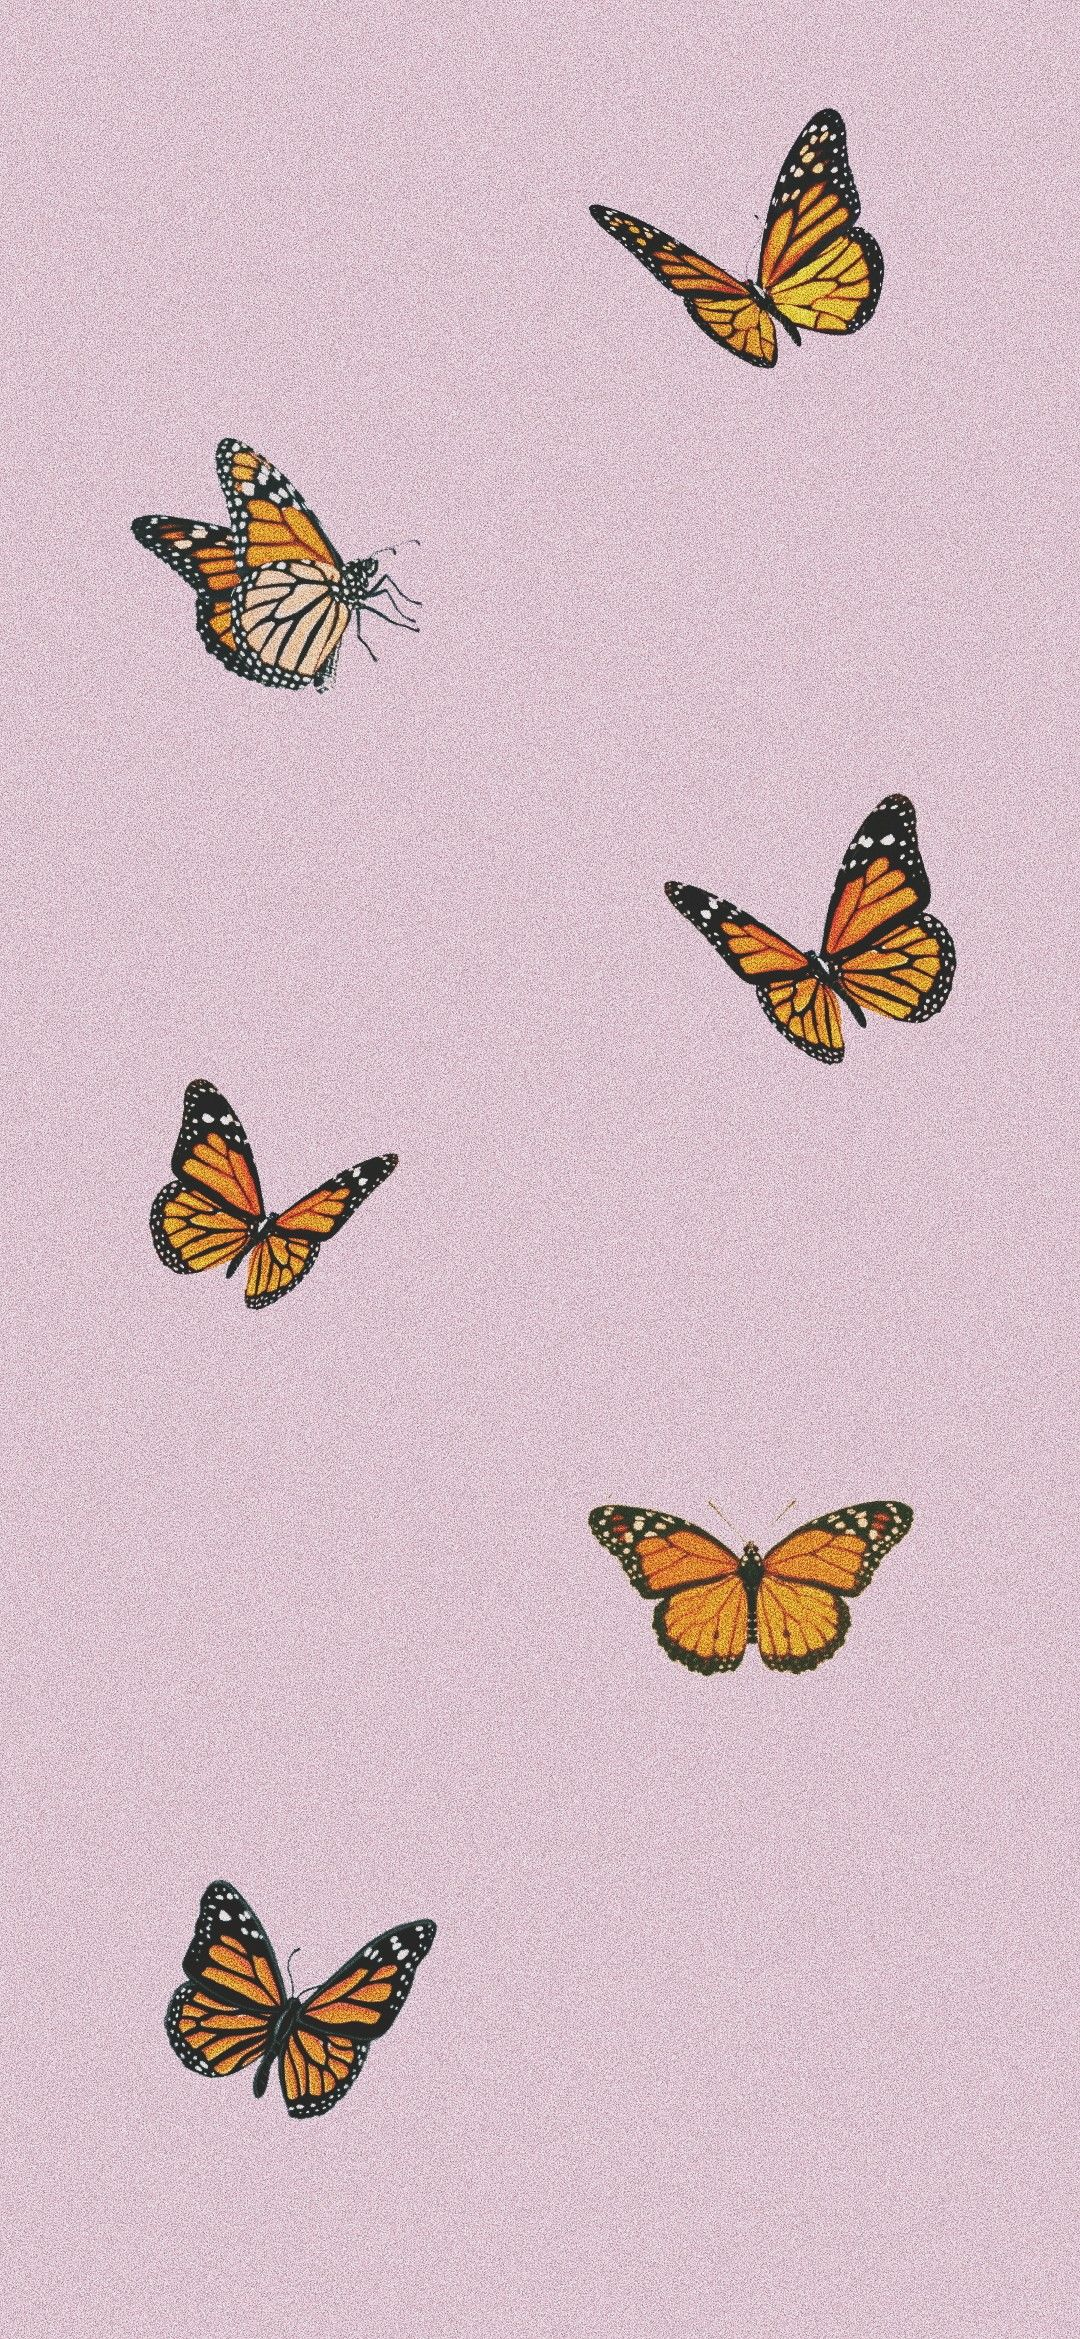 butterfly wallpaper iphone x big pink